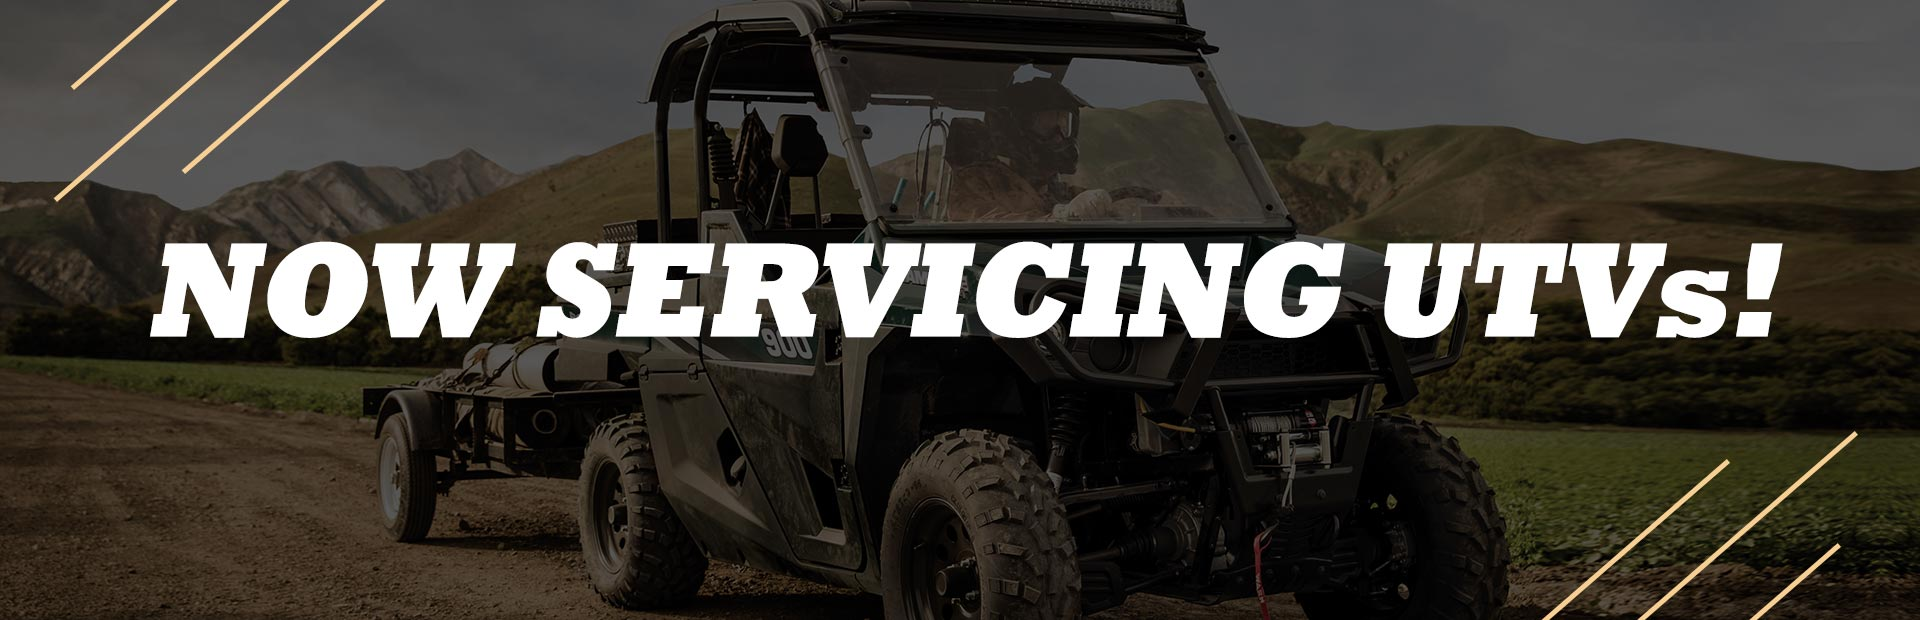 We now service UTVs! Click here to request a quote.